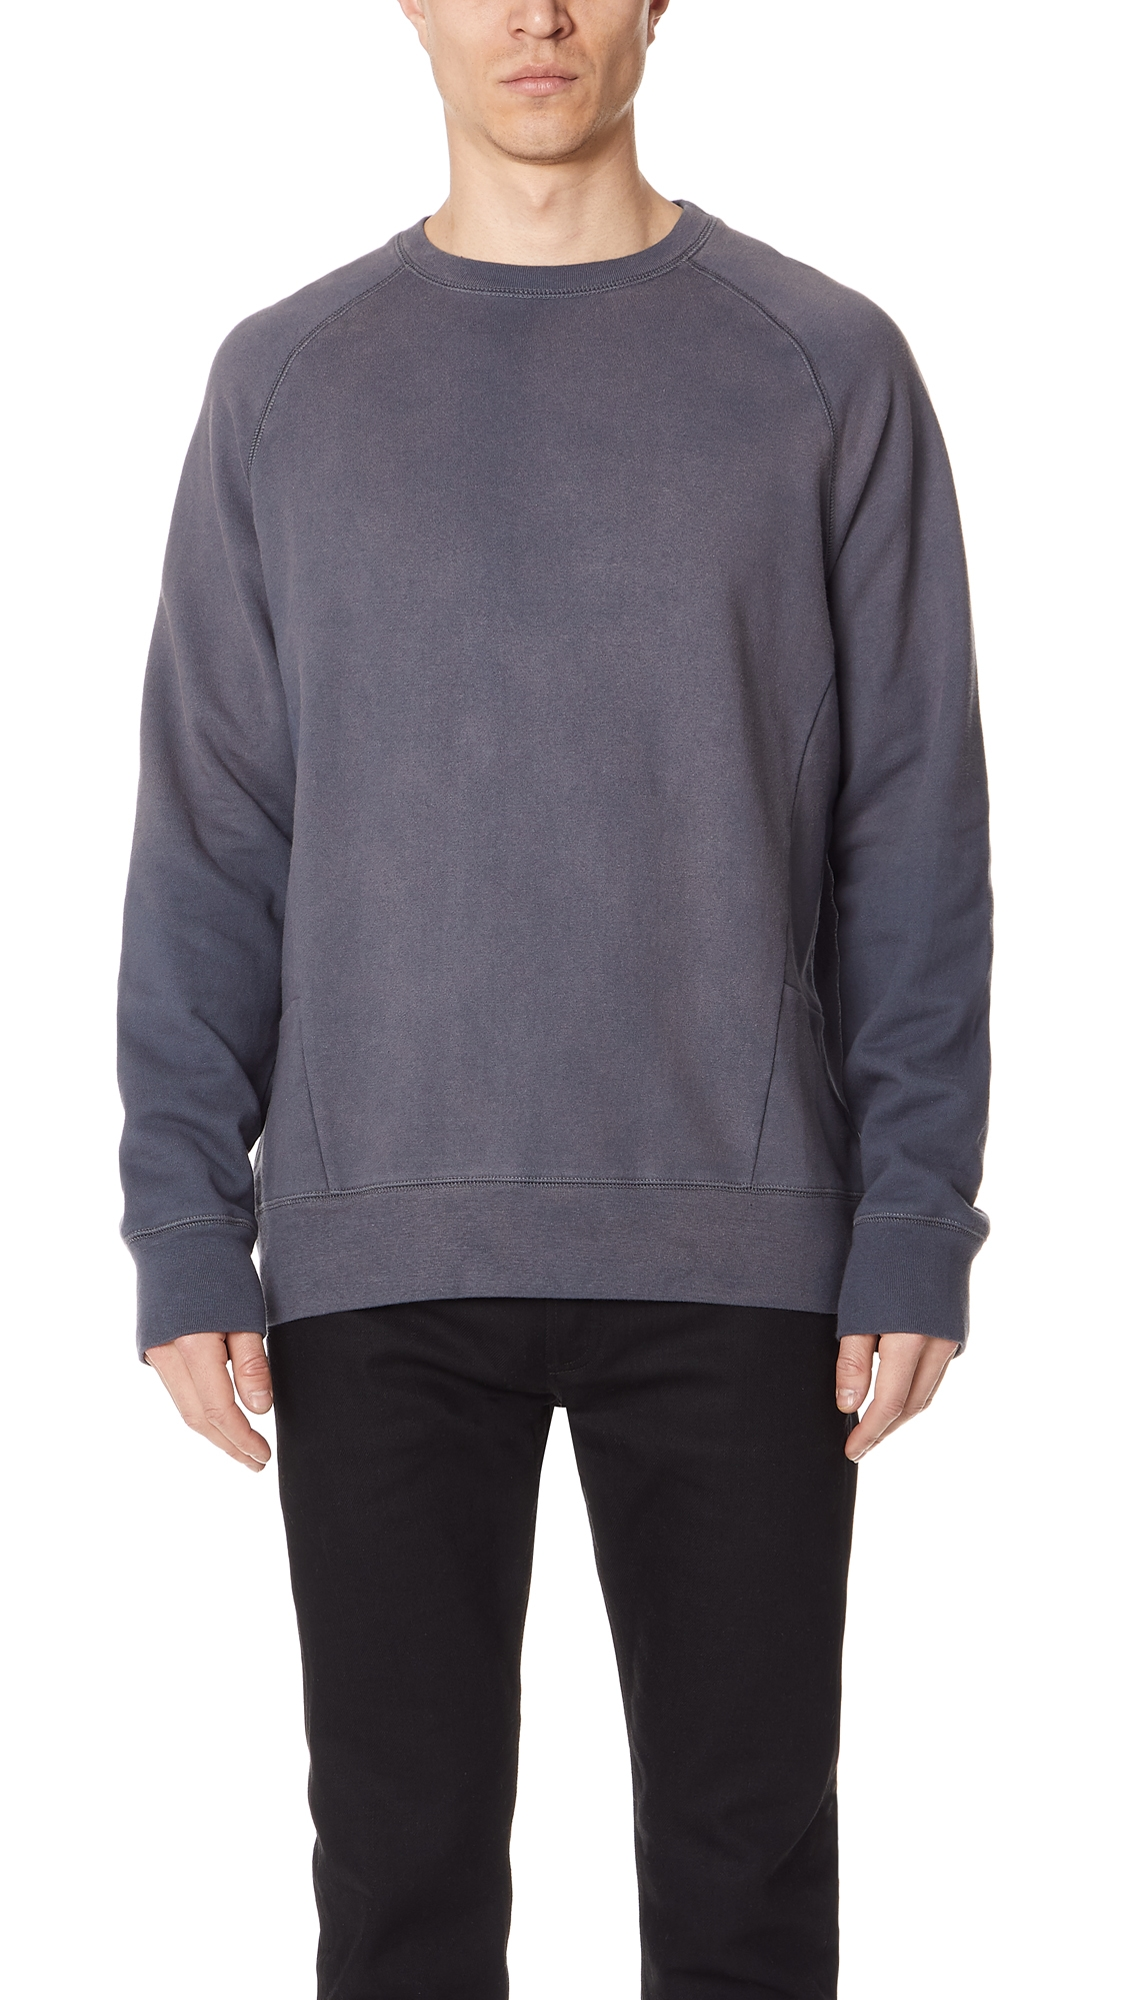 MATIERE GLENDALE - PULLOVER - GREYSTONE